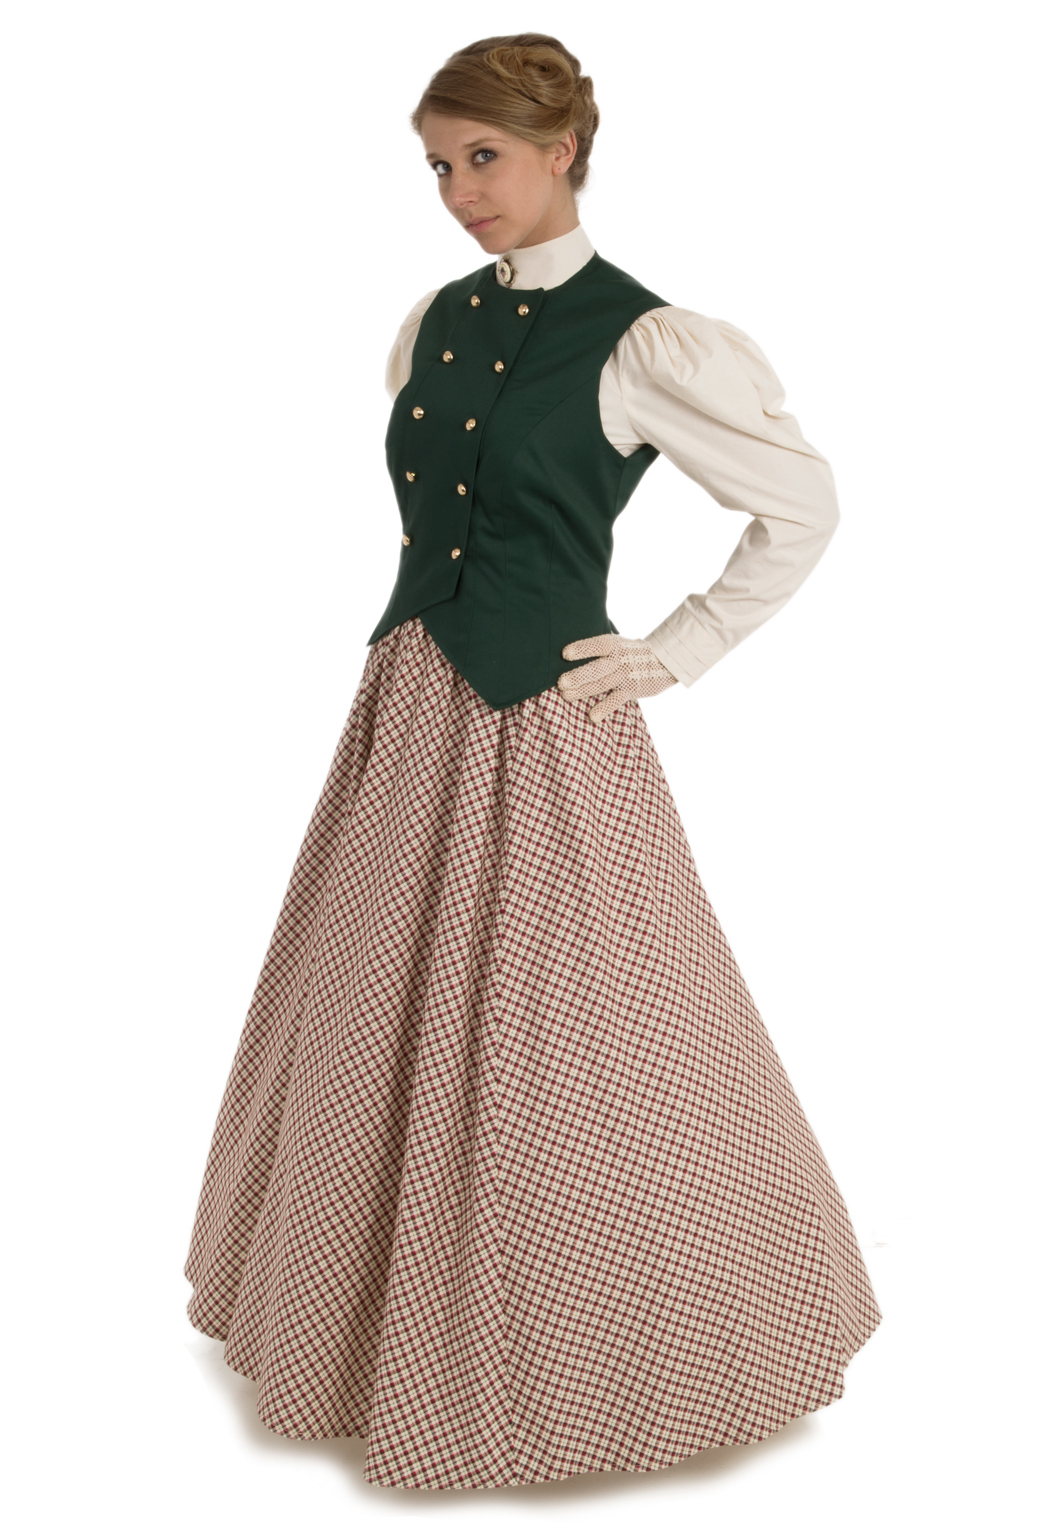 Old fashioned clothes